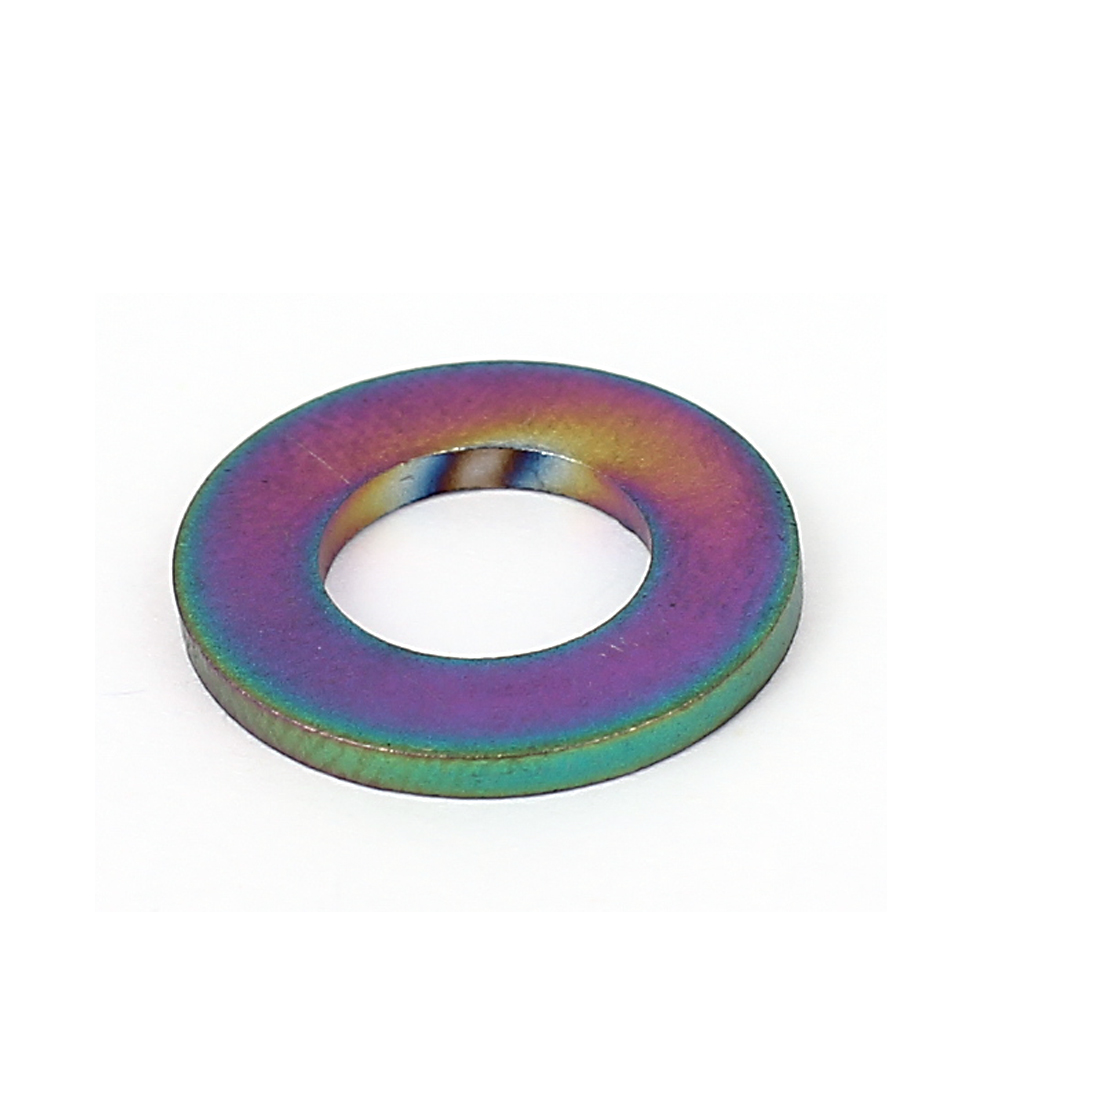 M8x16mm DIN 125A Colorful Titanium Ti Metric Plain Flat Washer for Bolt Screw